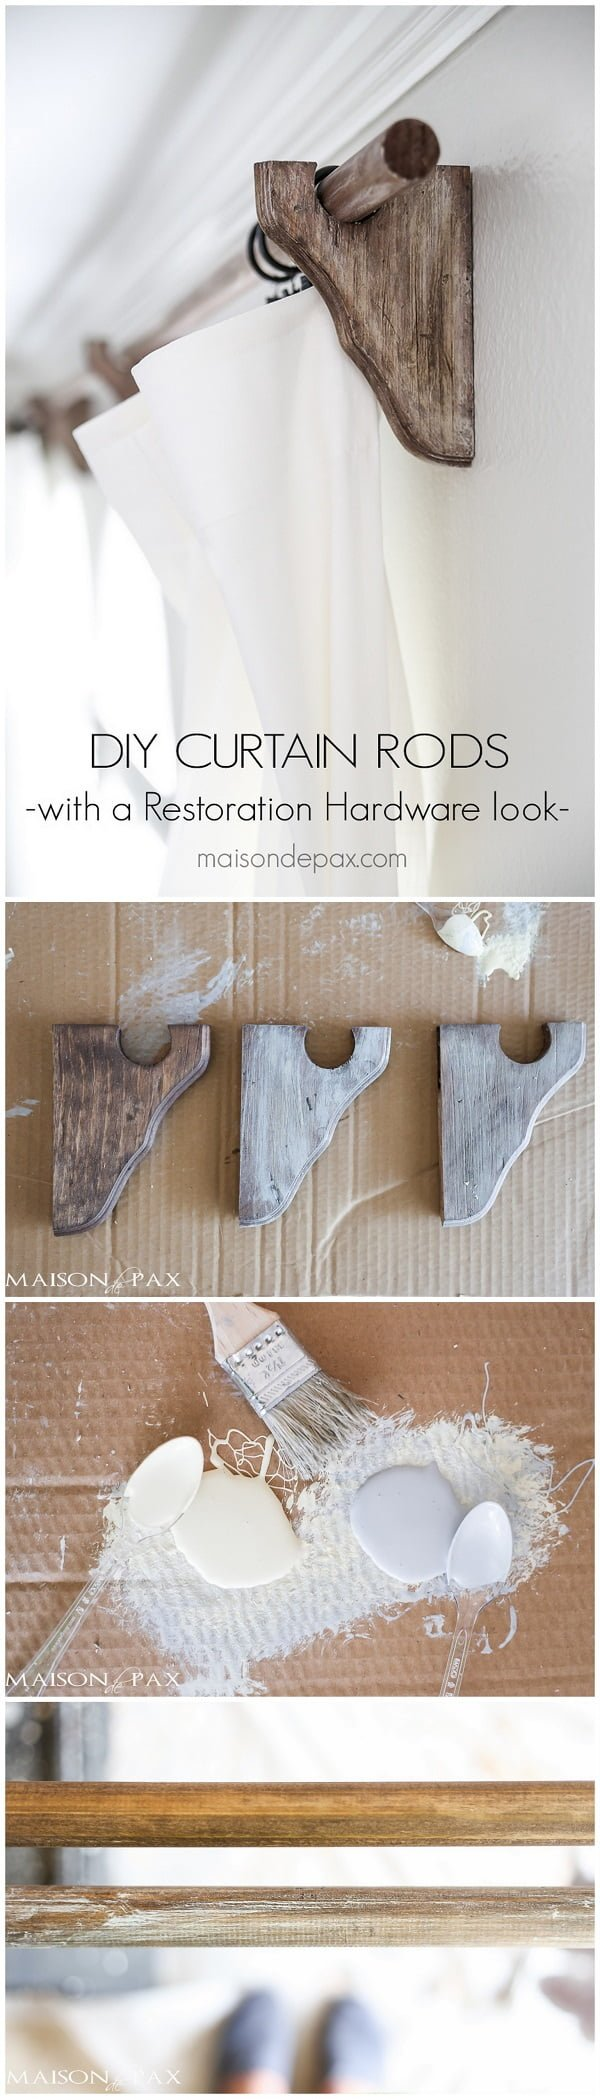 Check out how to make your own #DIY #farmhouse style curtain rods #woodworking #homedecor